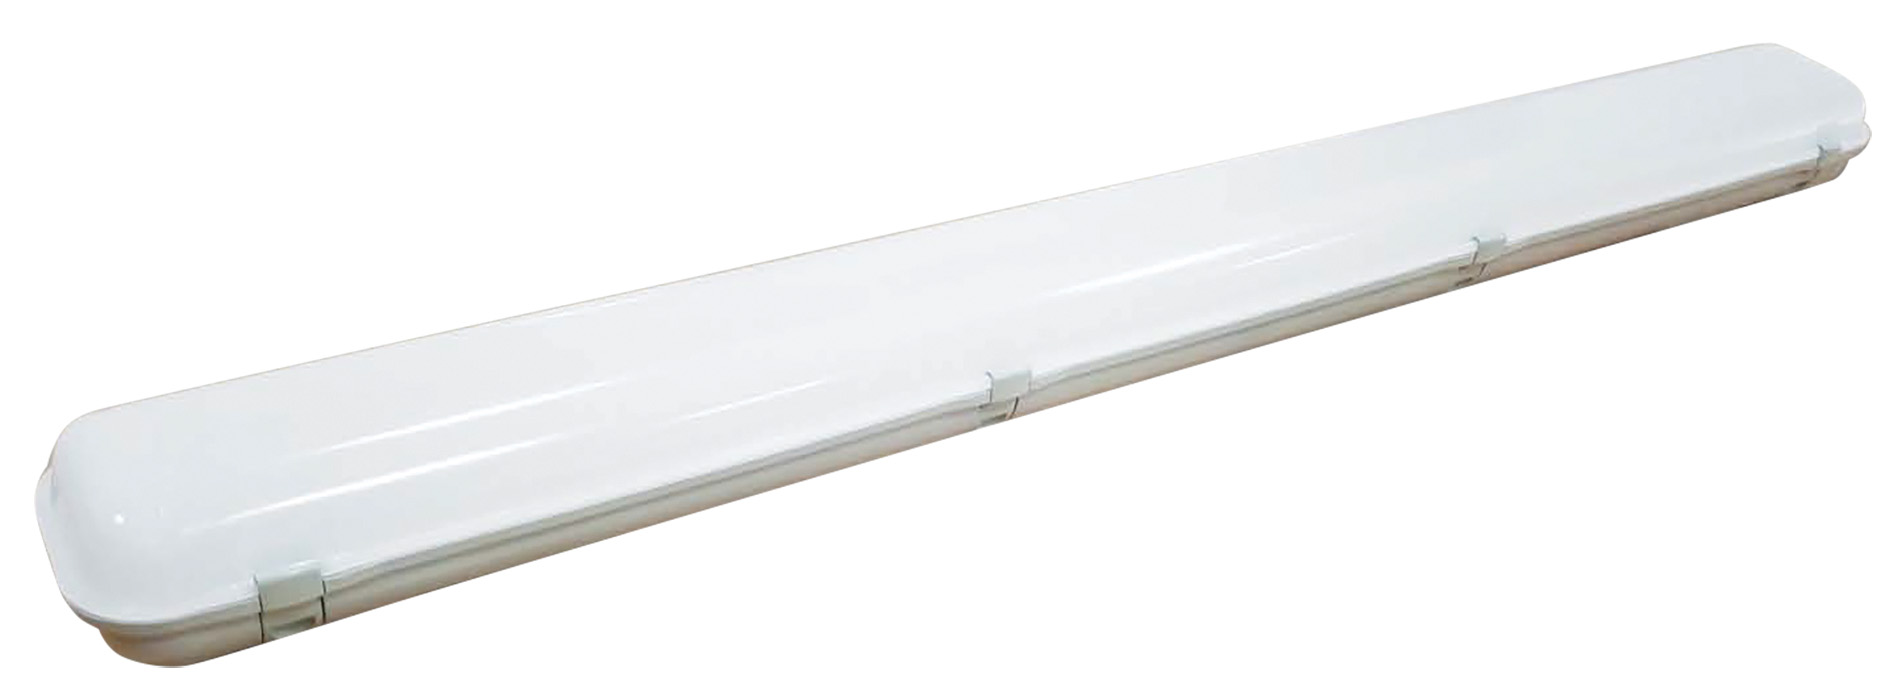 ORR258-1574S 57W LED Batten Light